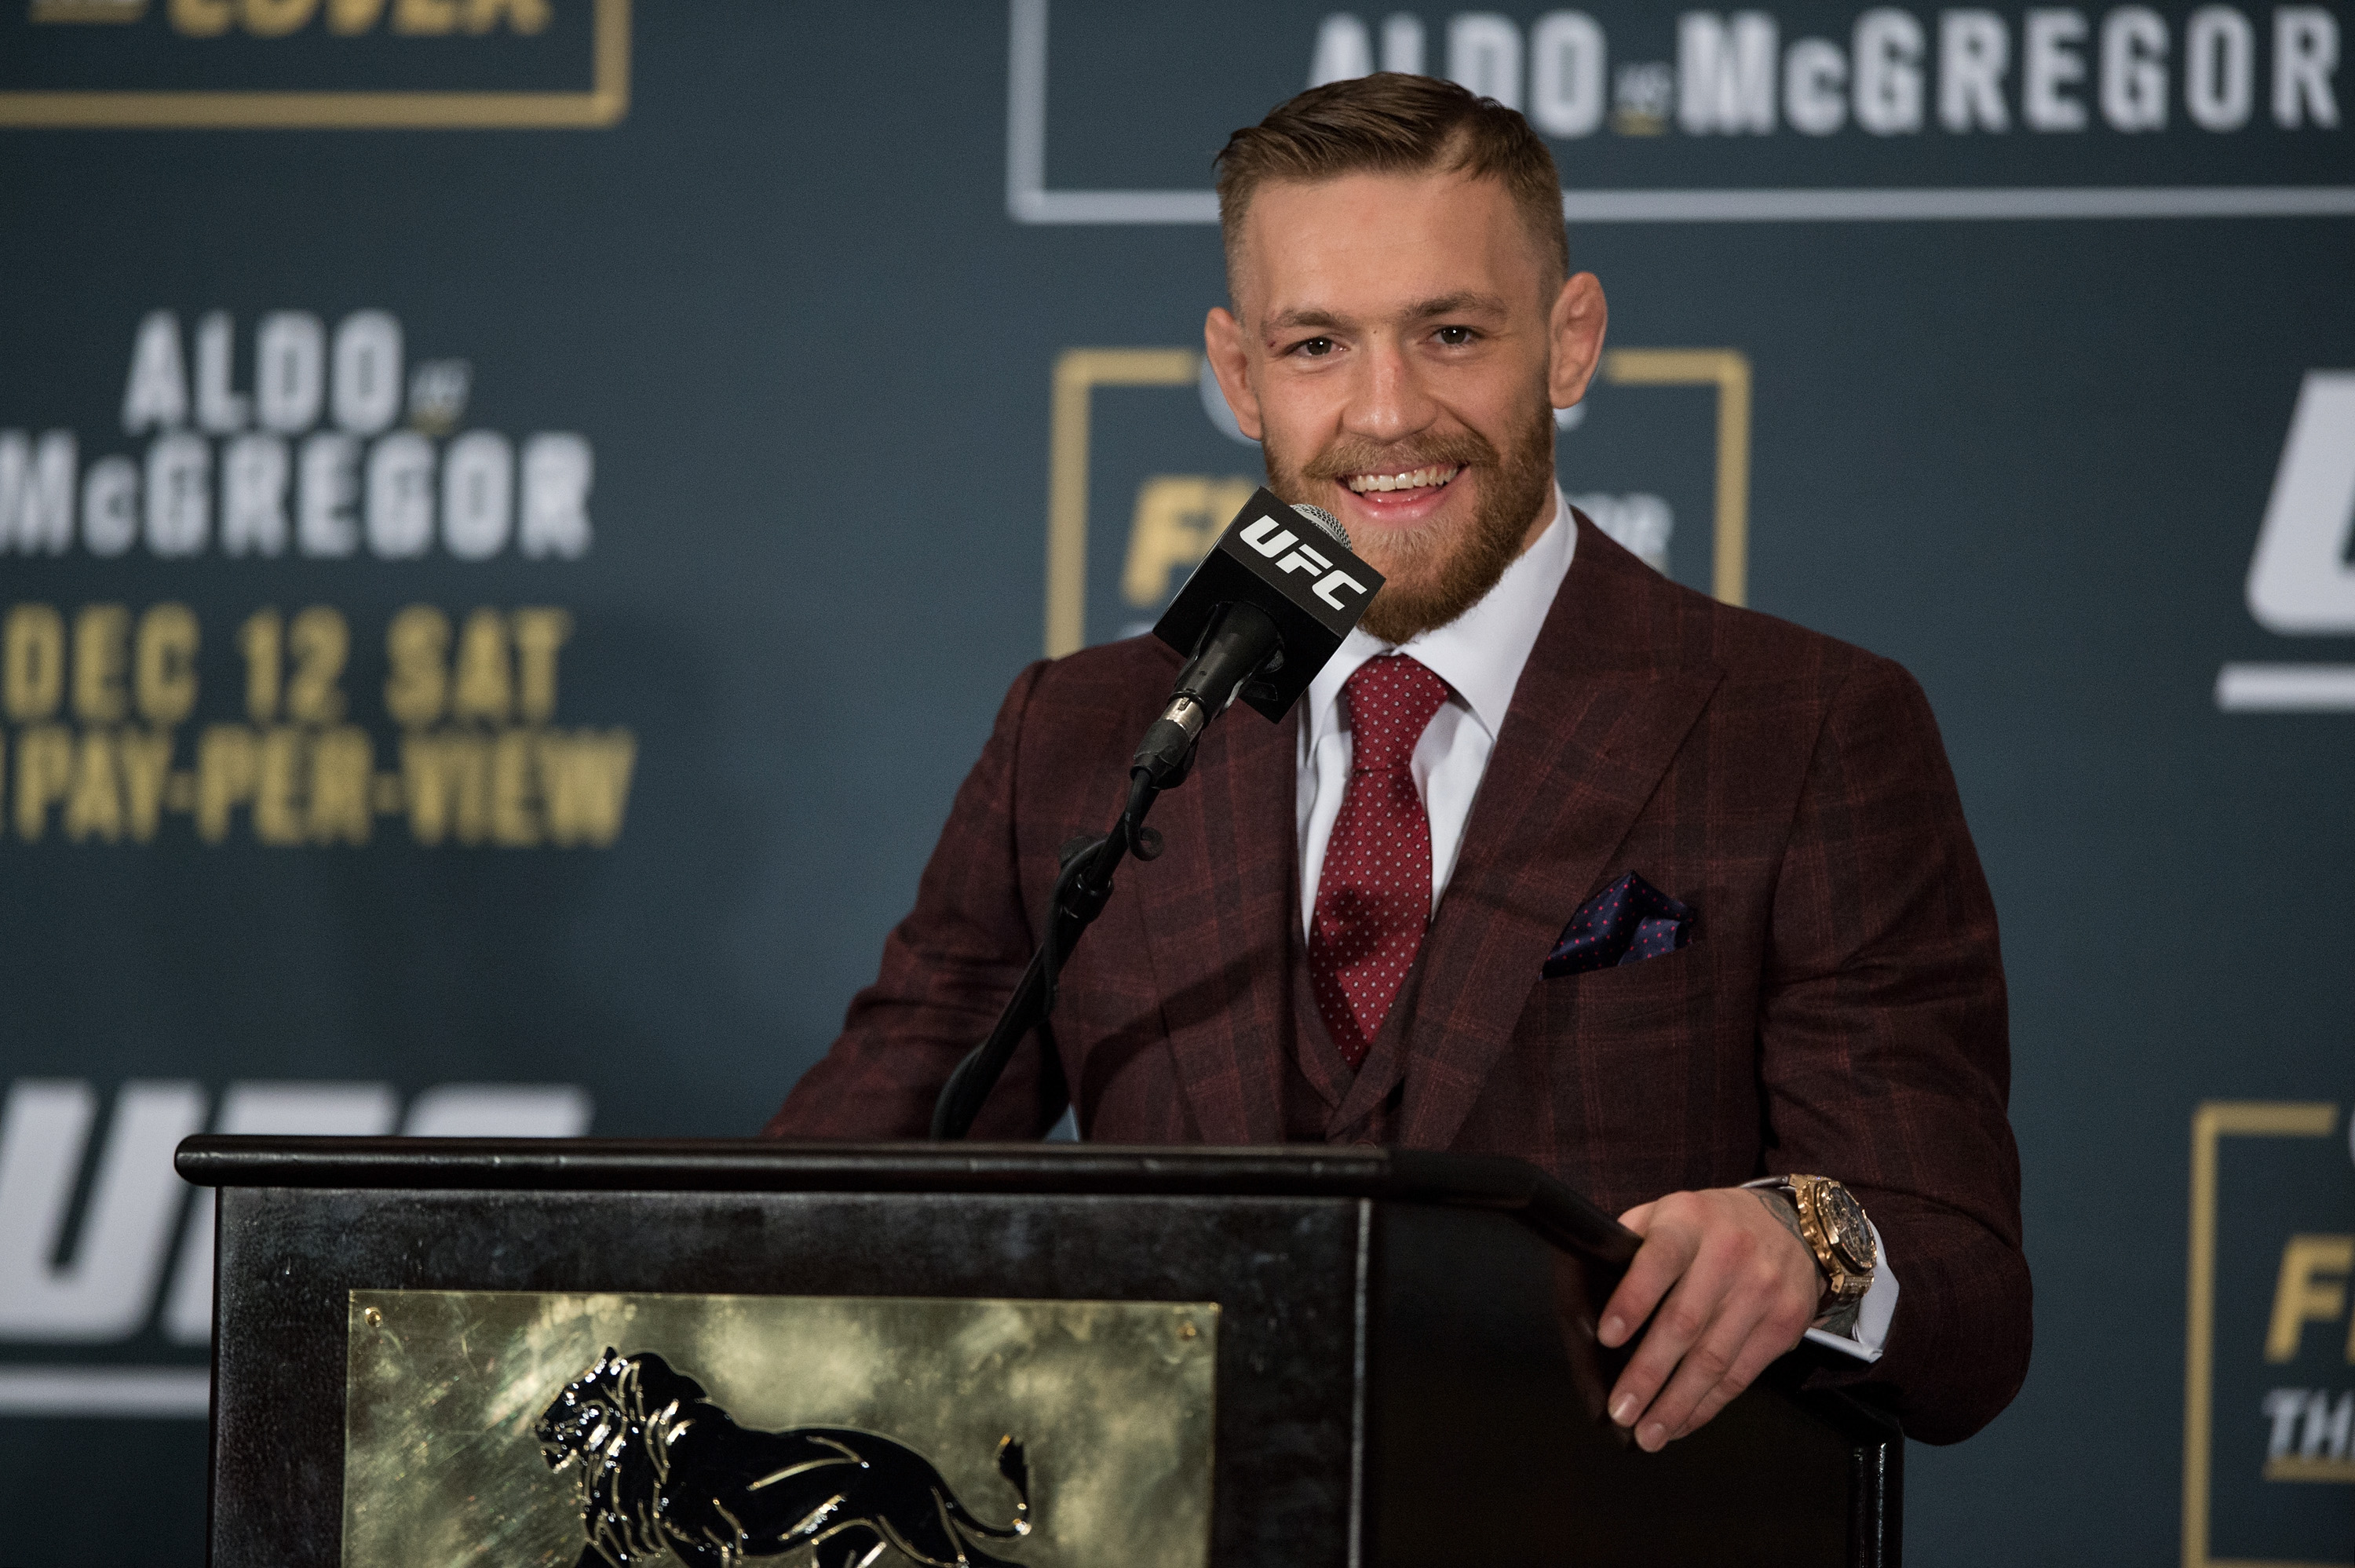 Mcgregor vs dos anjos betting odds binary trading options training